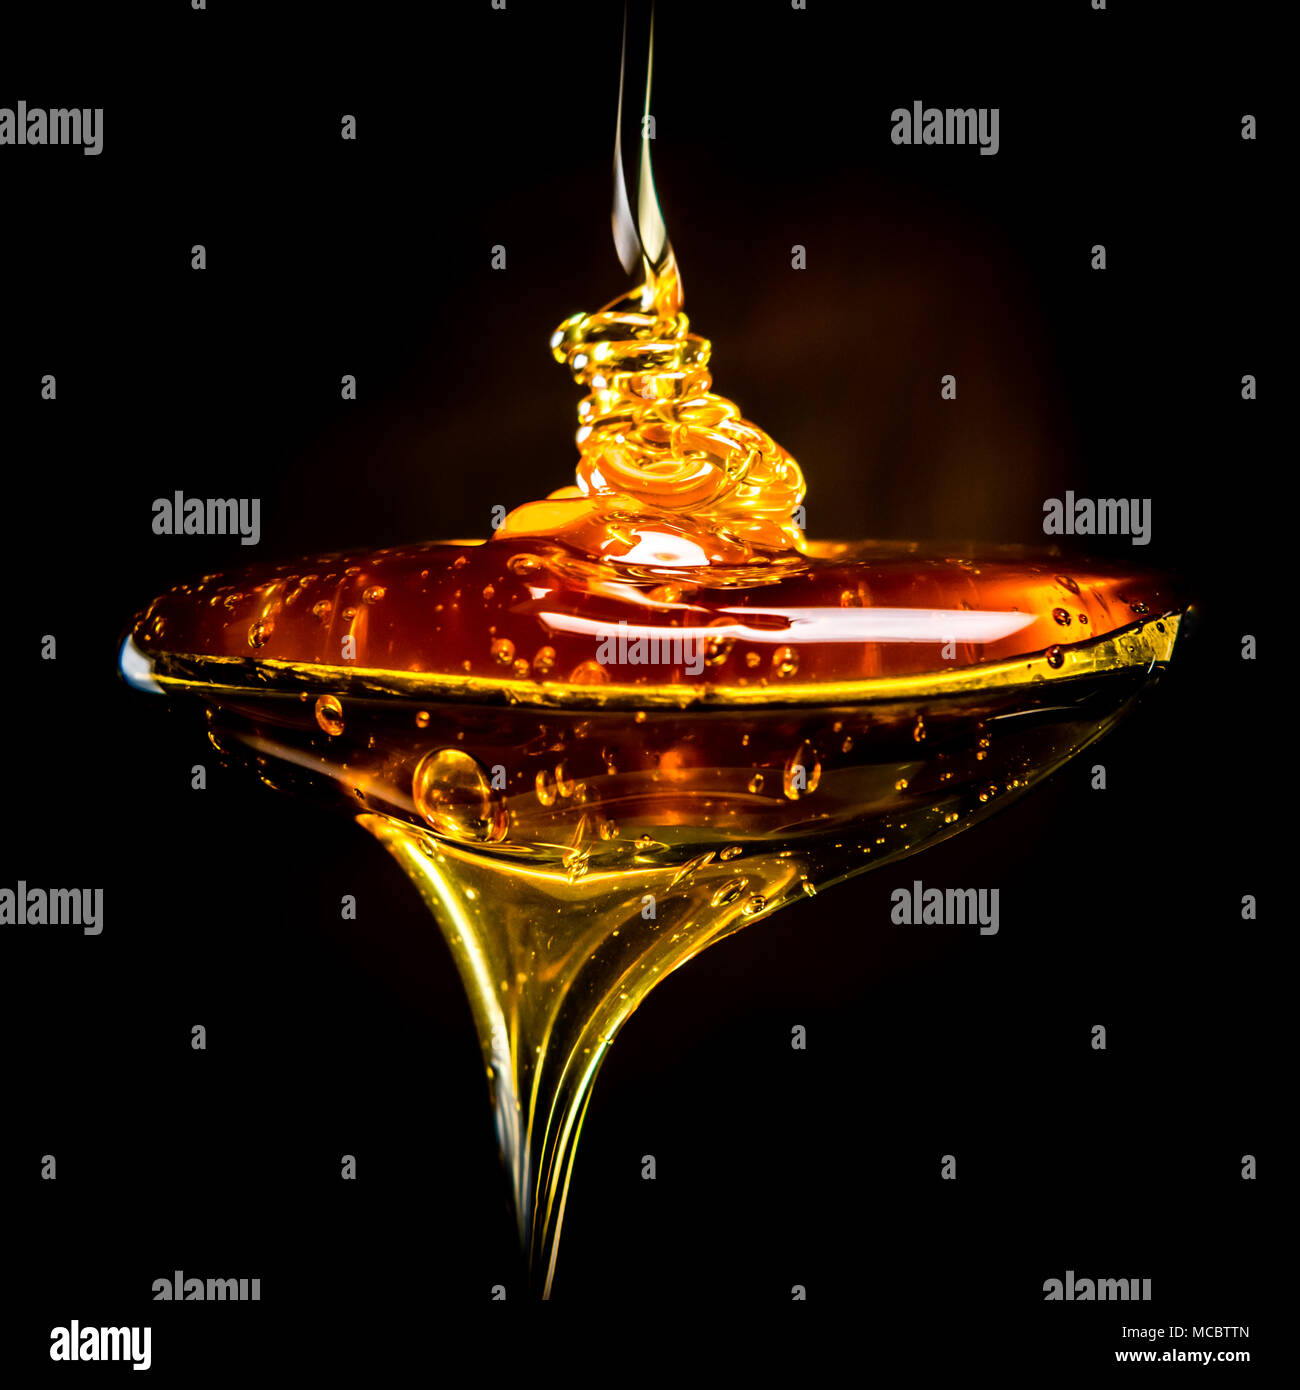 Abstract of Honey Pouring Into Spoon - Stock Image